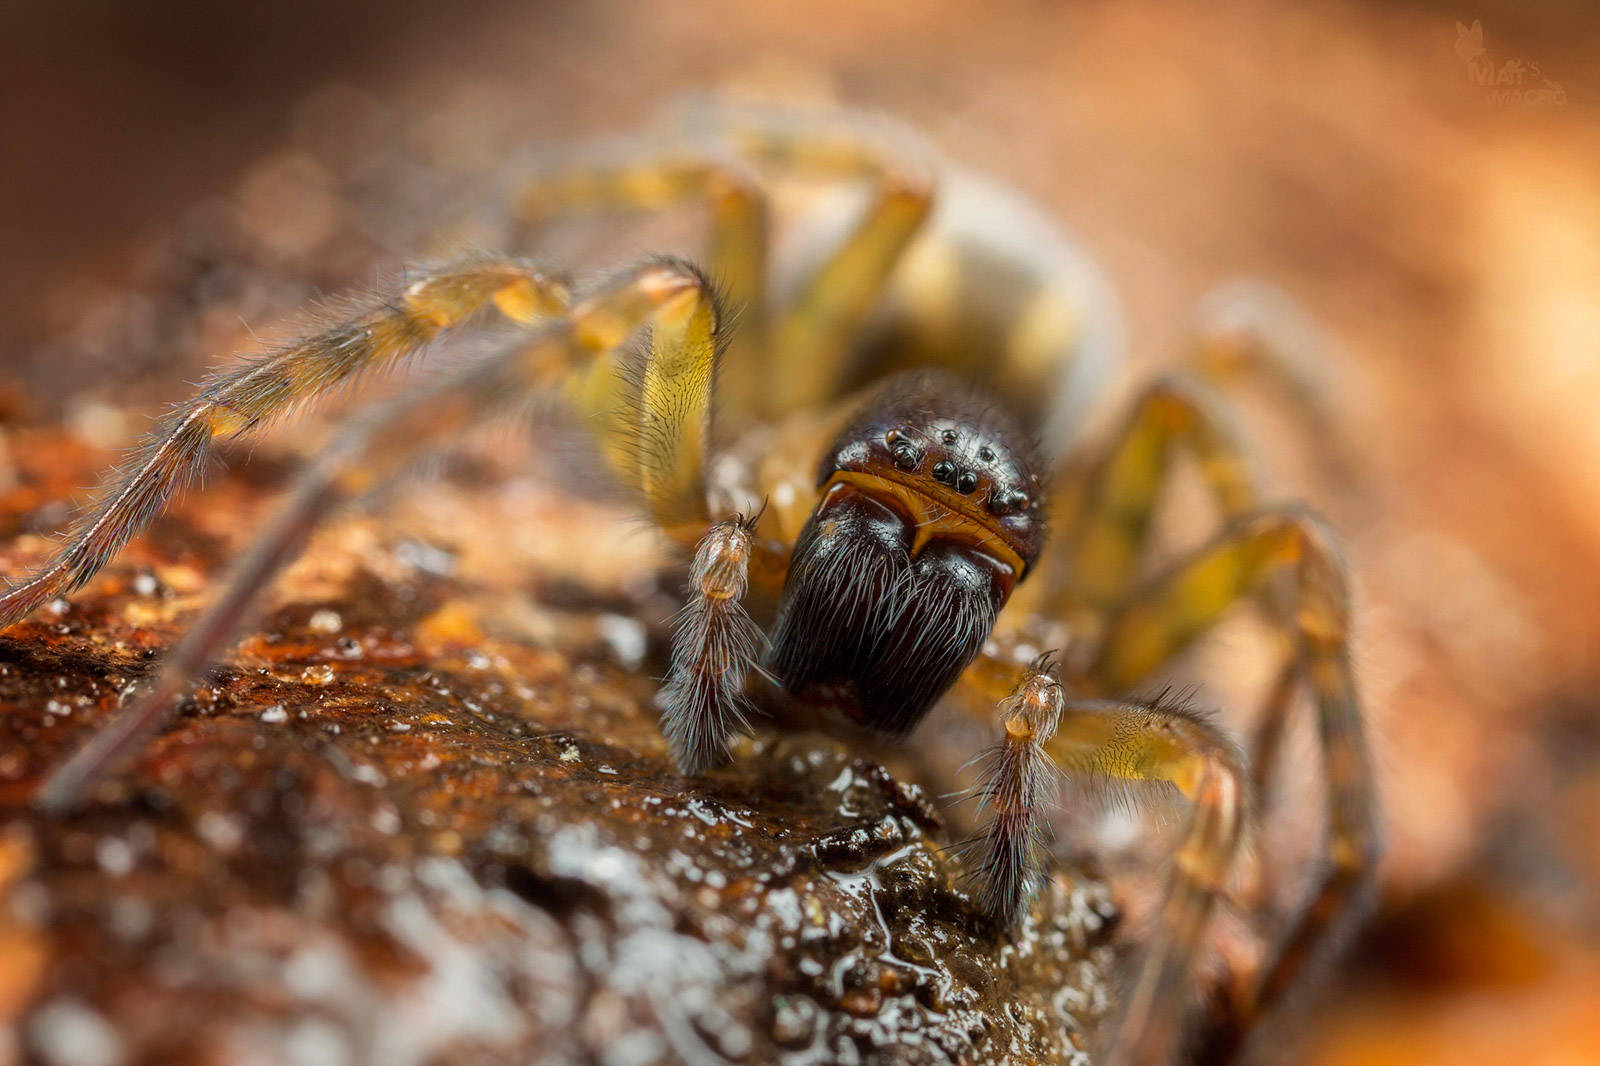 how to take a macro photo of spiders